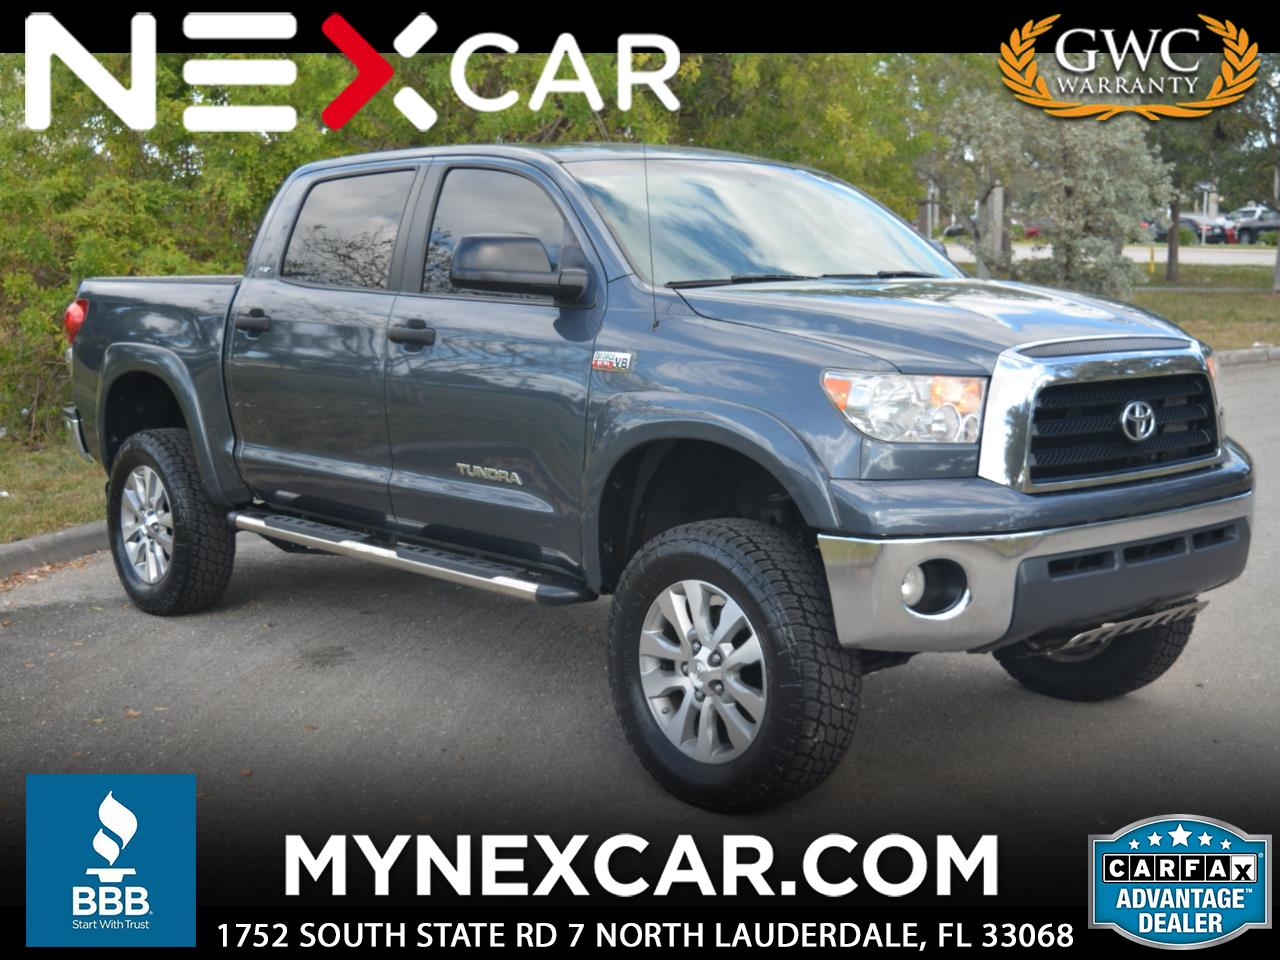 2009 Toyota Tundra 2WD Truck CrewMax 5.7L V8 6-Spd AT LTD (Natl)